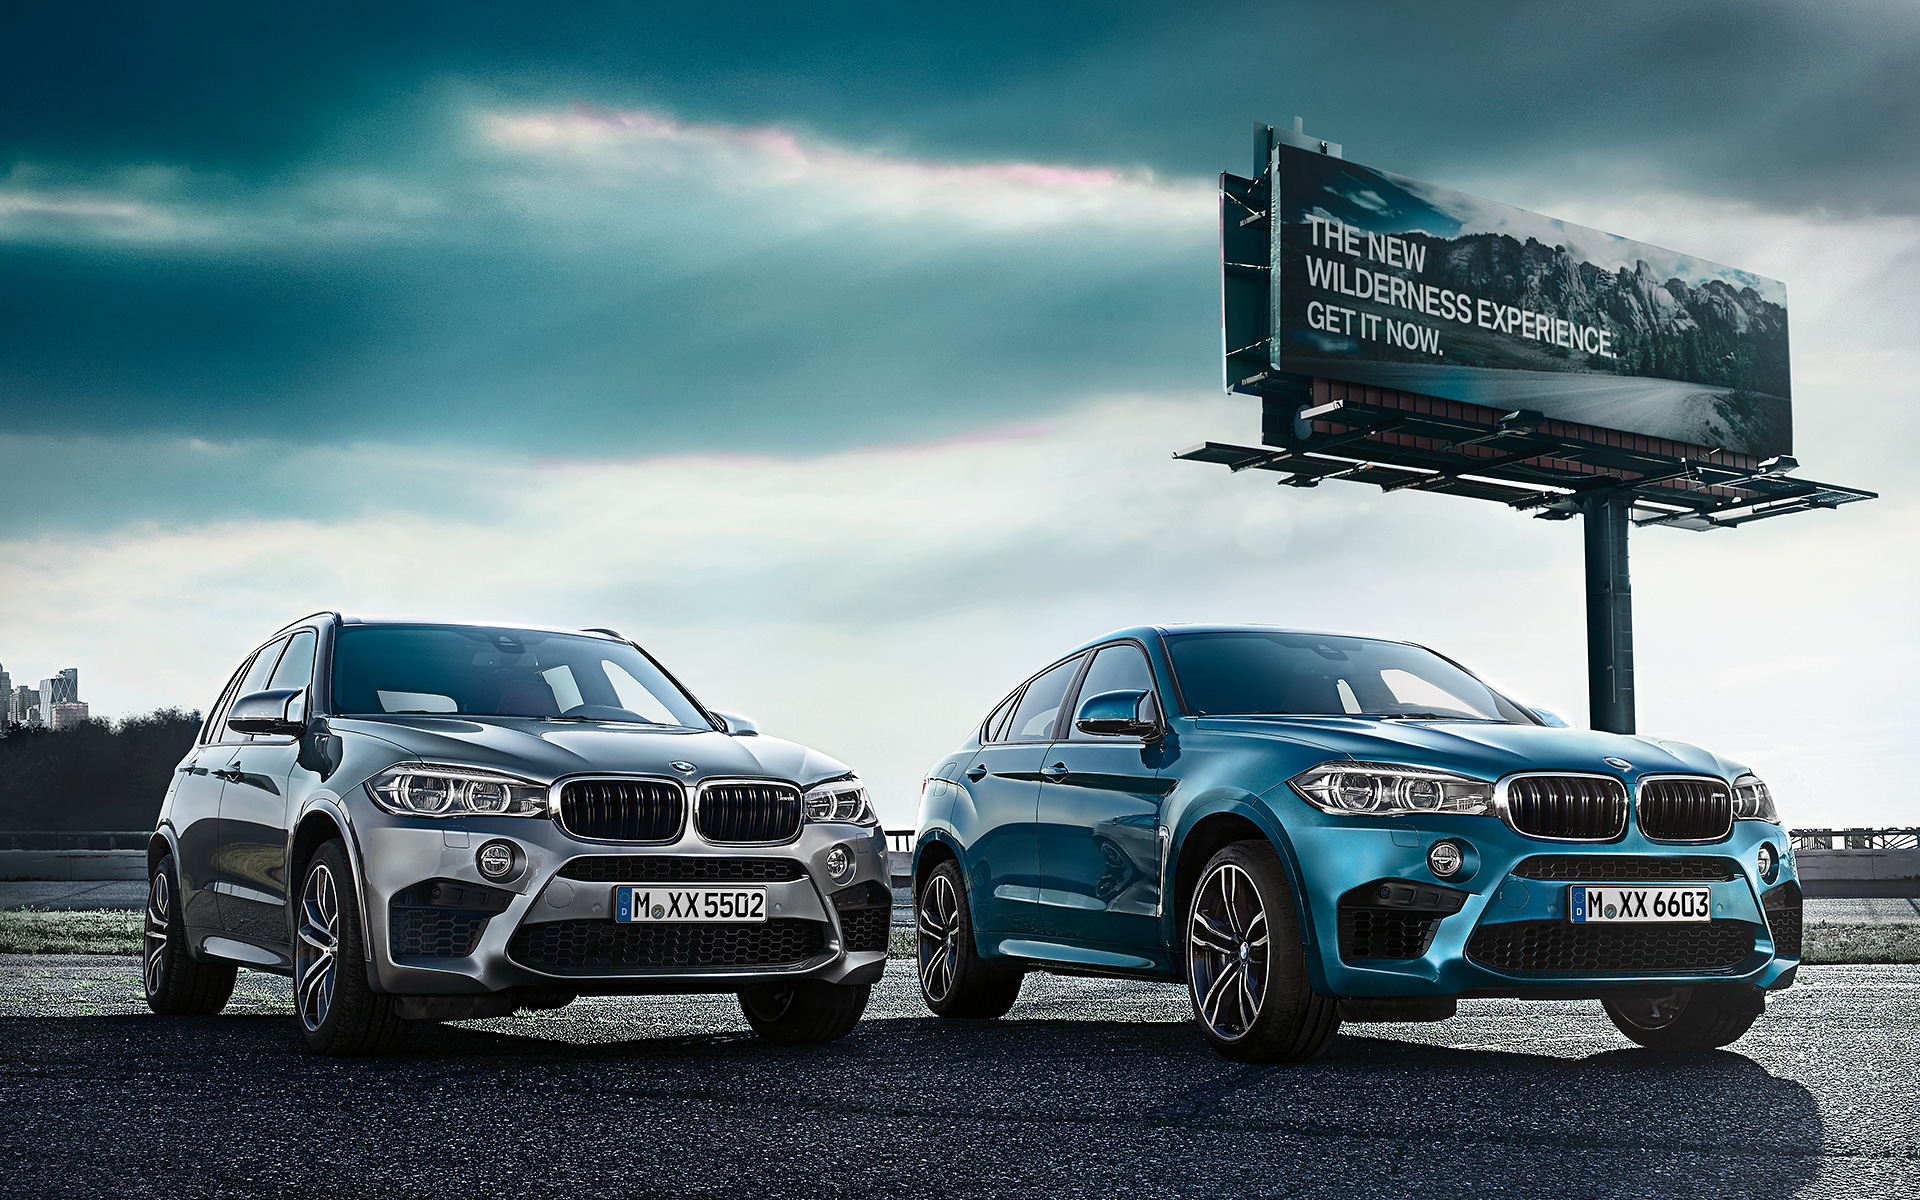 BMW X6 M and X5 M - Front View